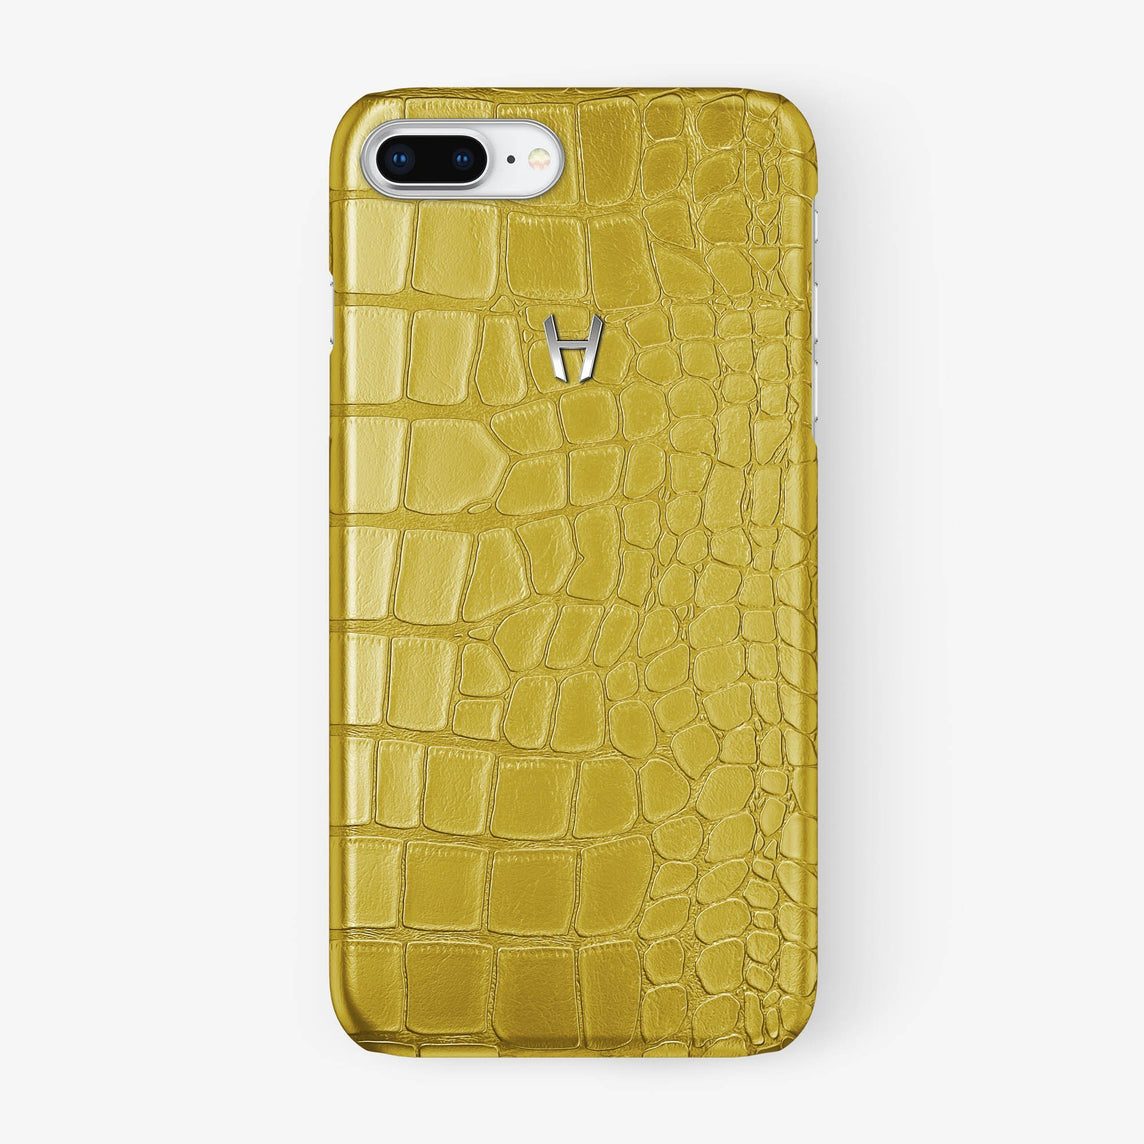 Alligator Case iPhone 7/8 Plus | Yellow - Stainless Steel